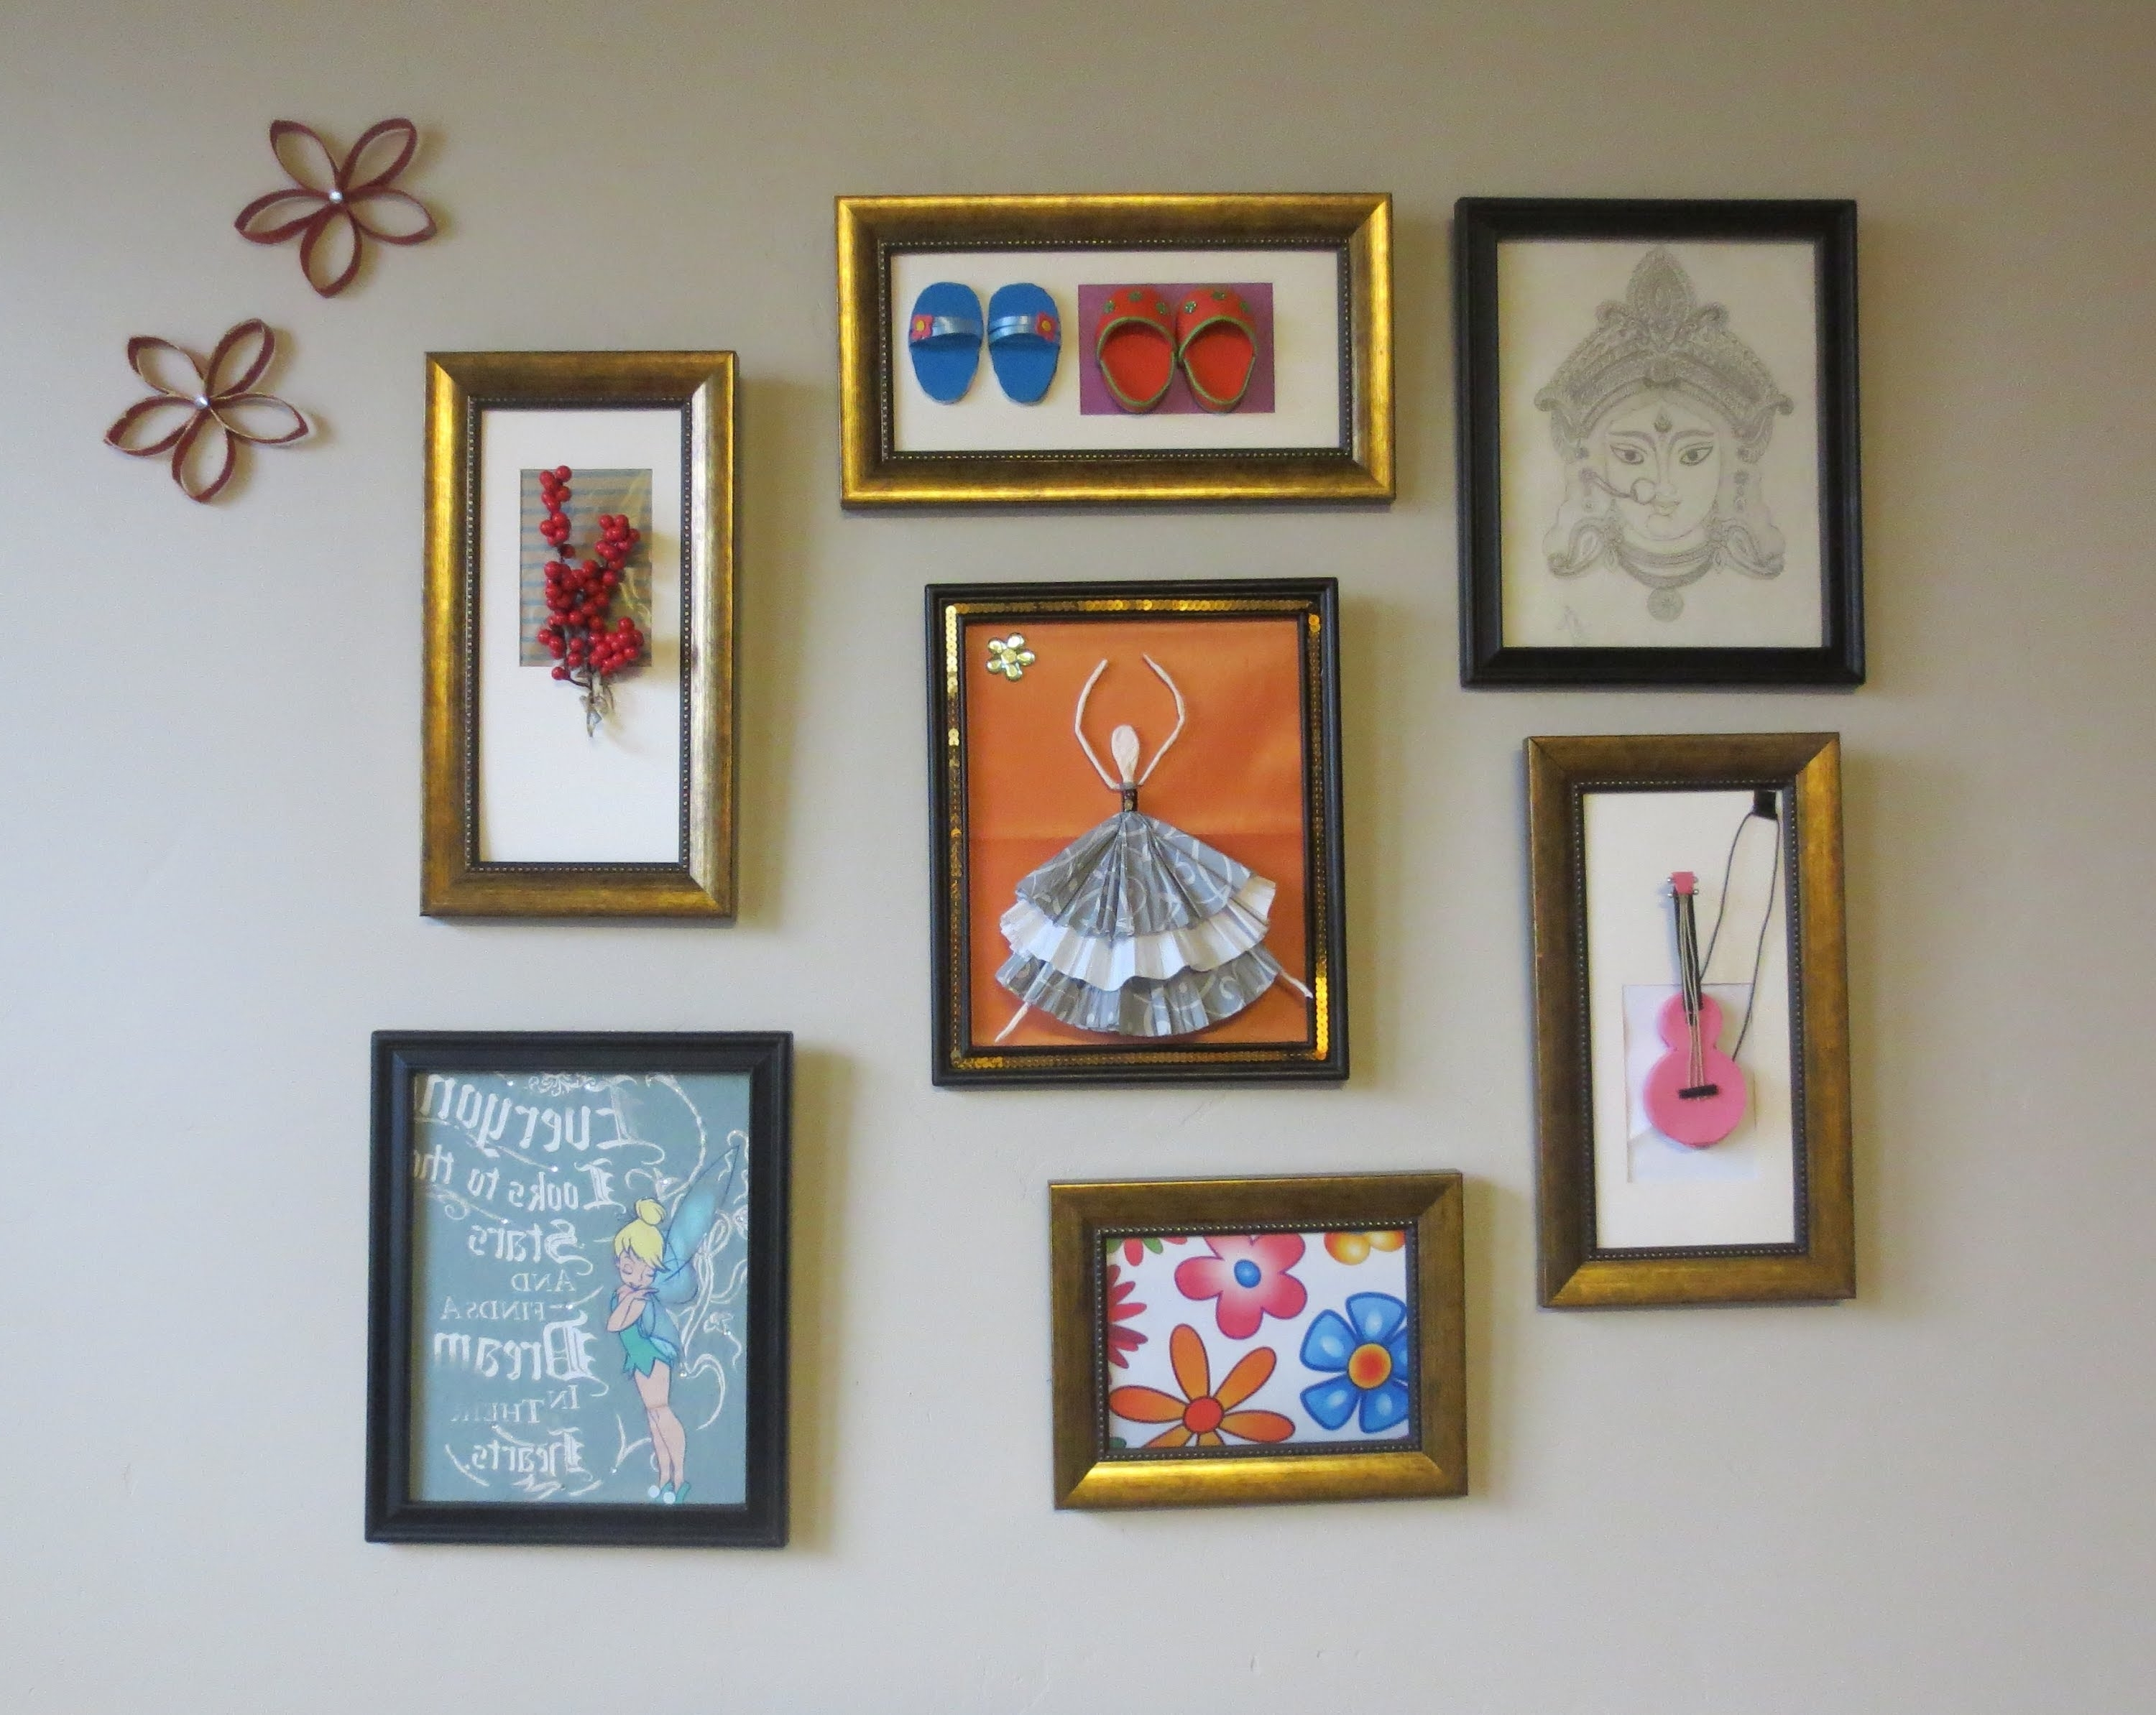 Well Liked Cheap Framed Wall Art With Regard To Home Decor : Tshirt Graphic & 3D Wall Art Picture Frame Collage (View 15 of 15)